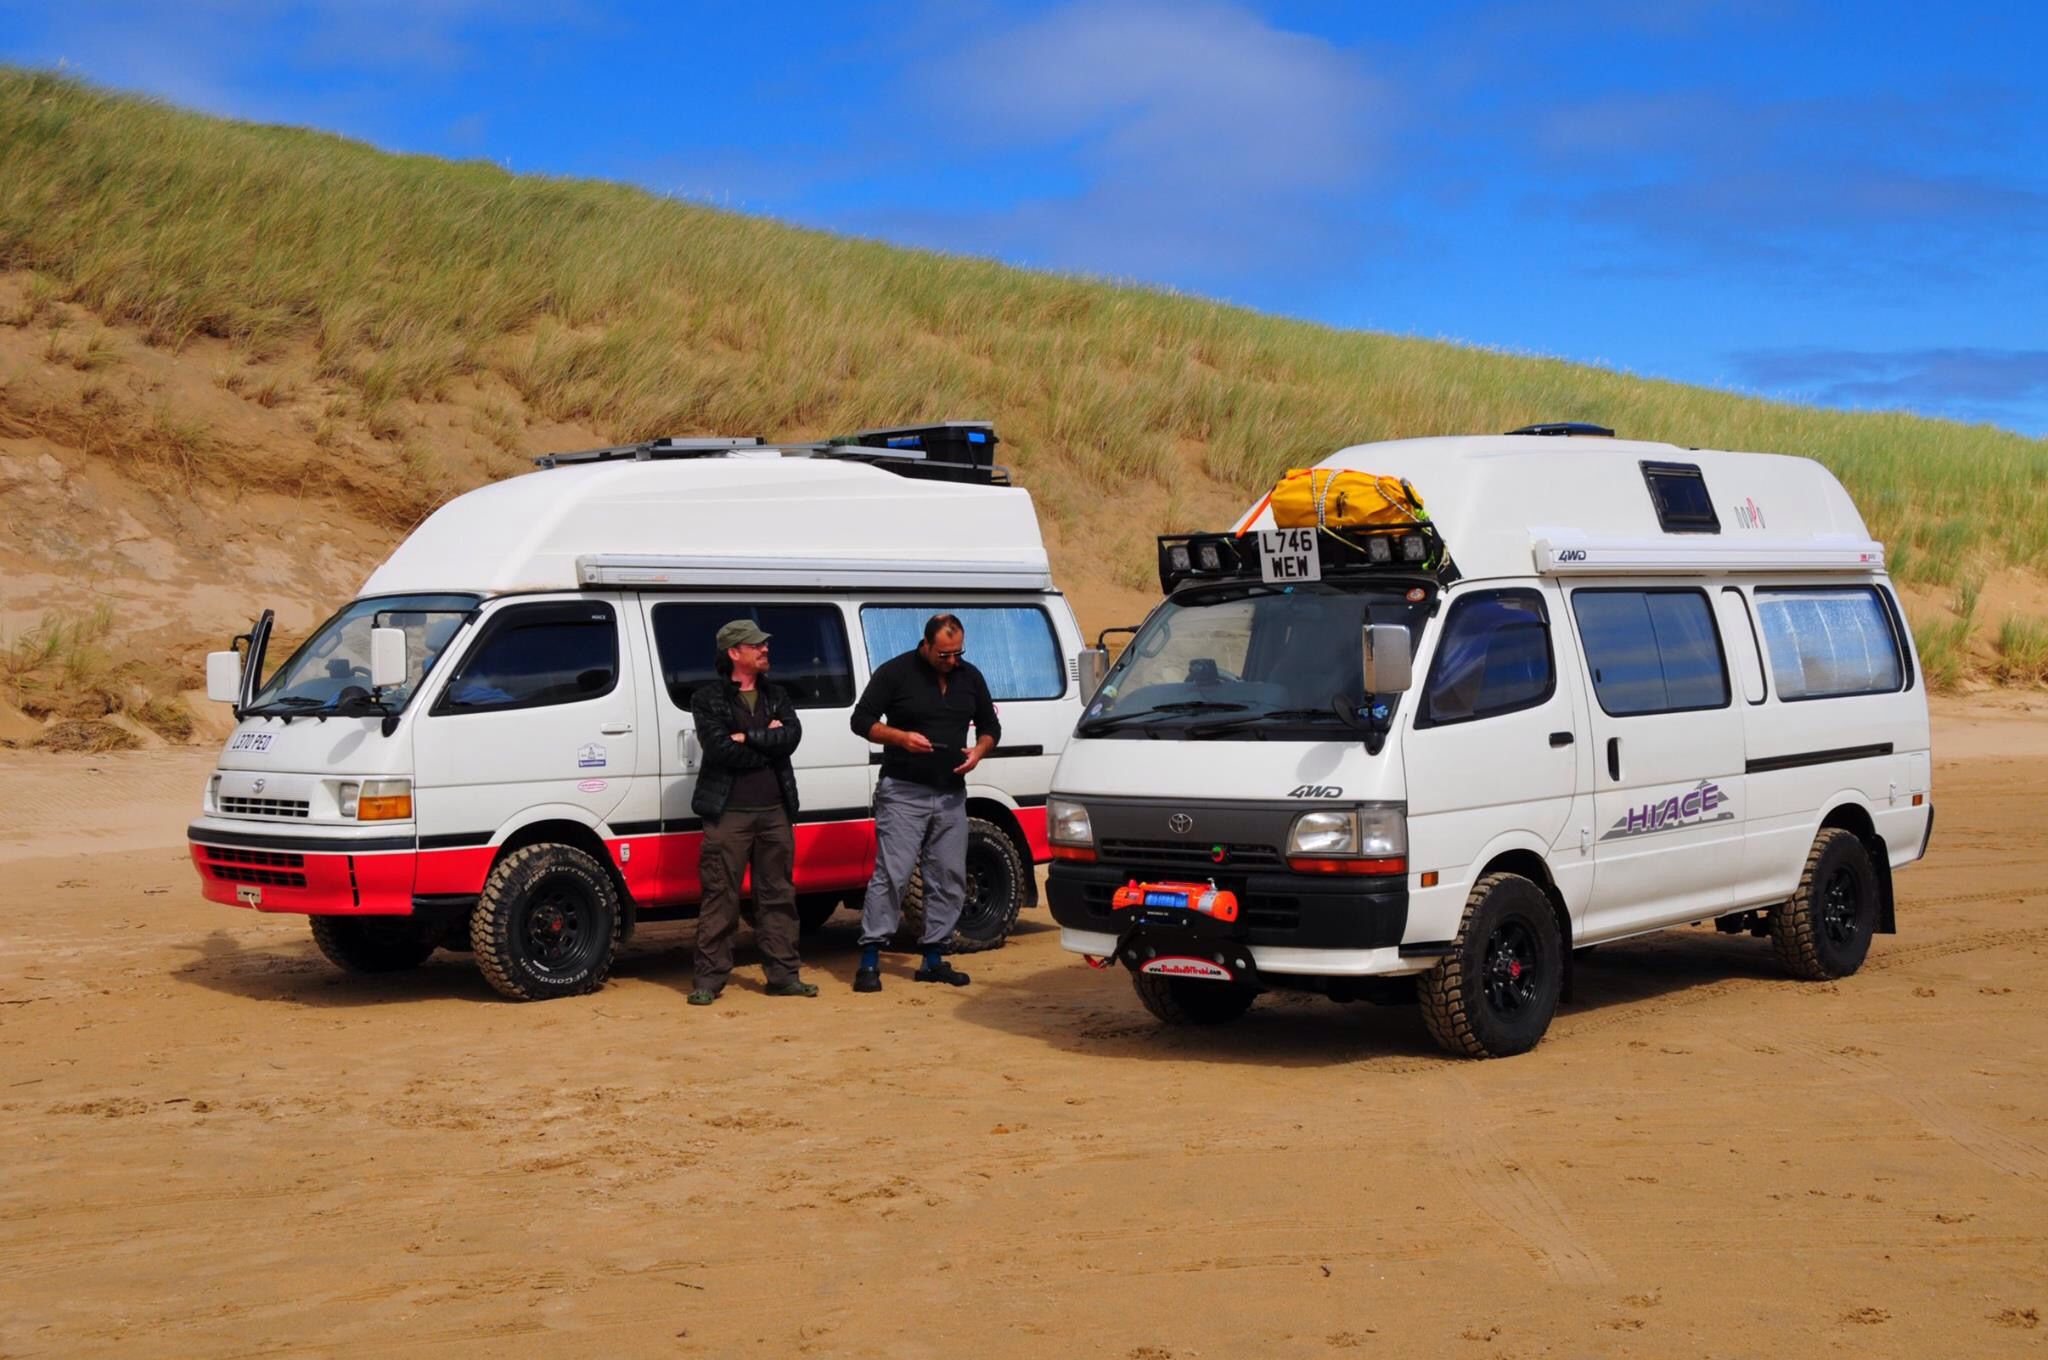 Toyota Hiace 4x4 campers by Bloodred | VW | Toyota van